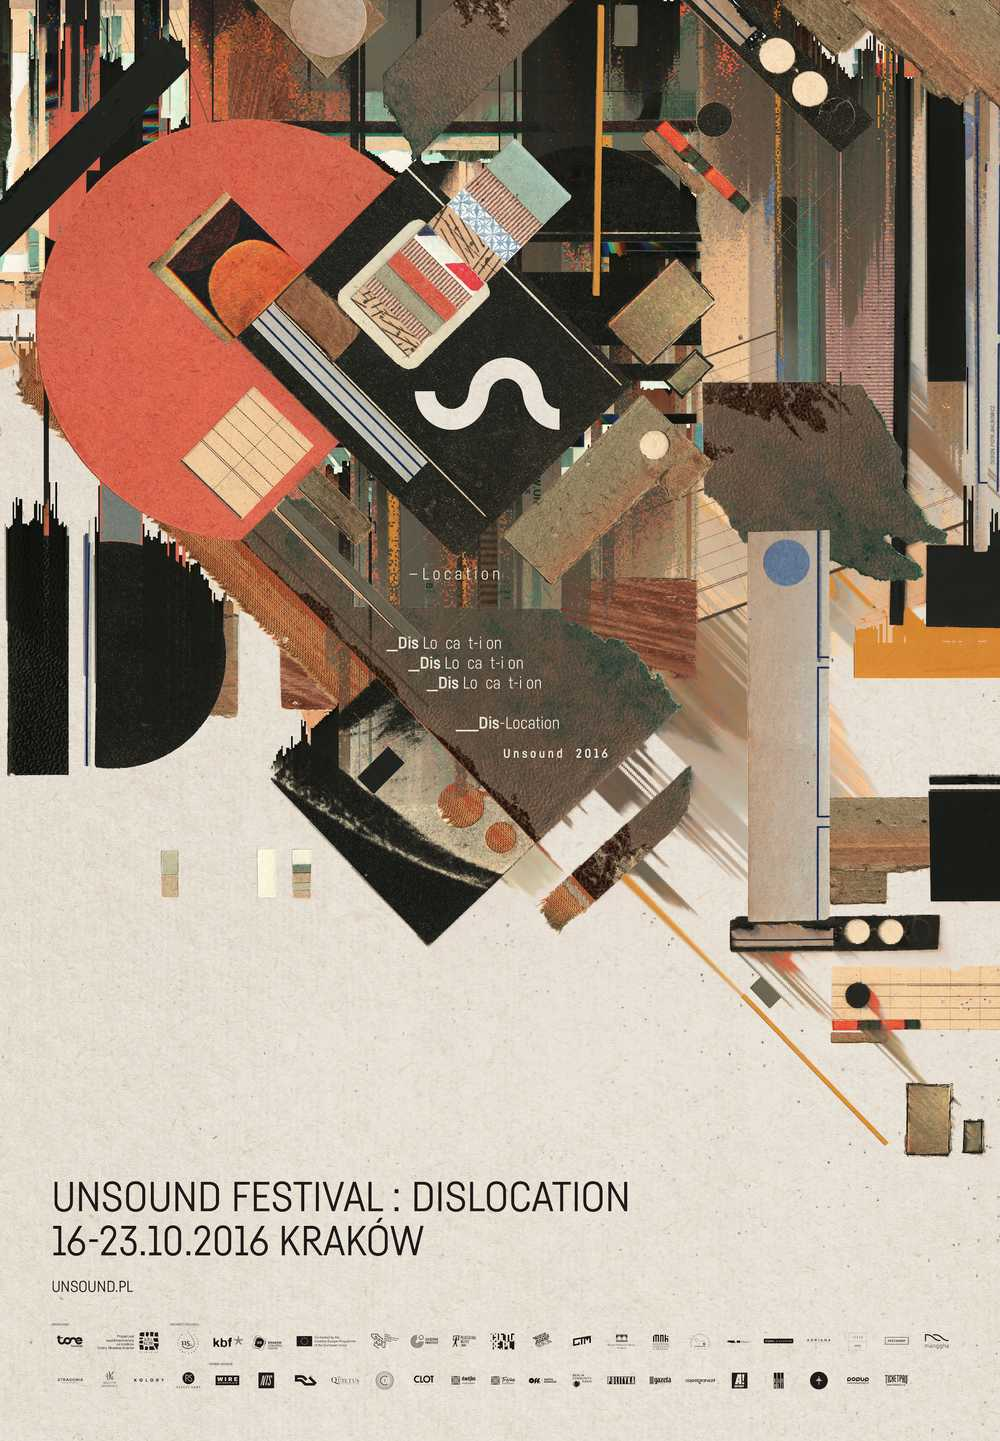 Unsound 2016 Dislocation poster